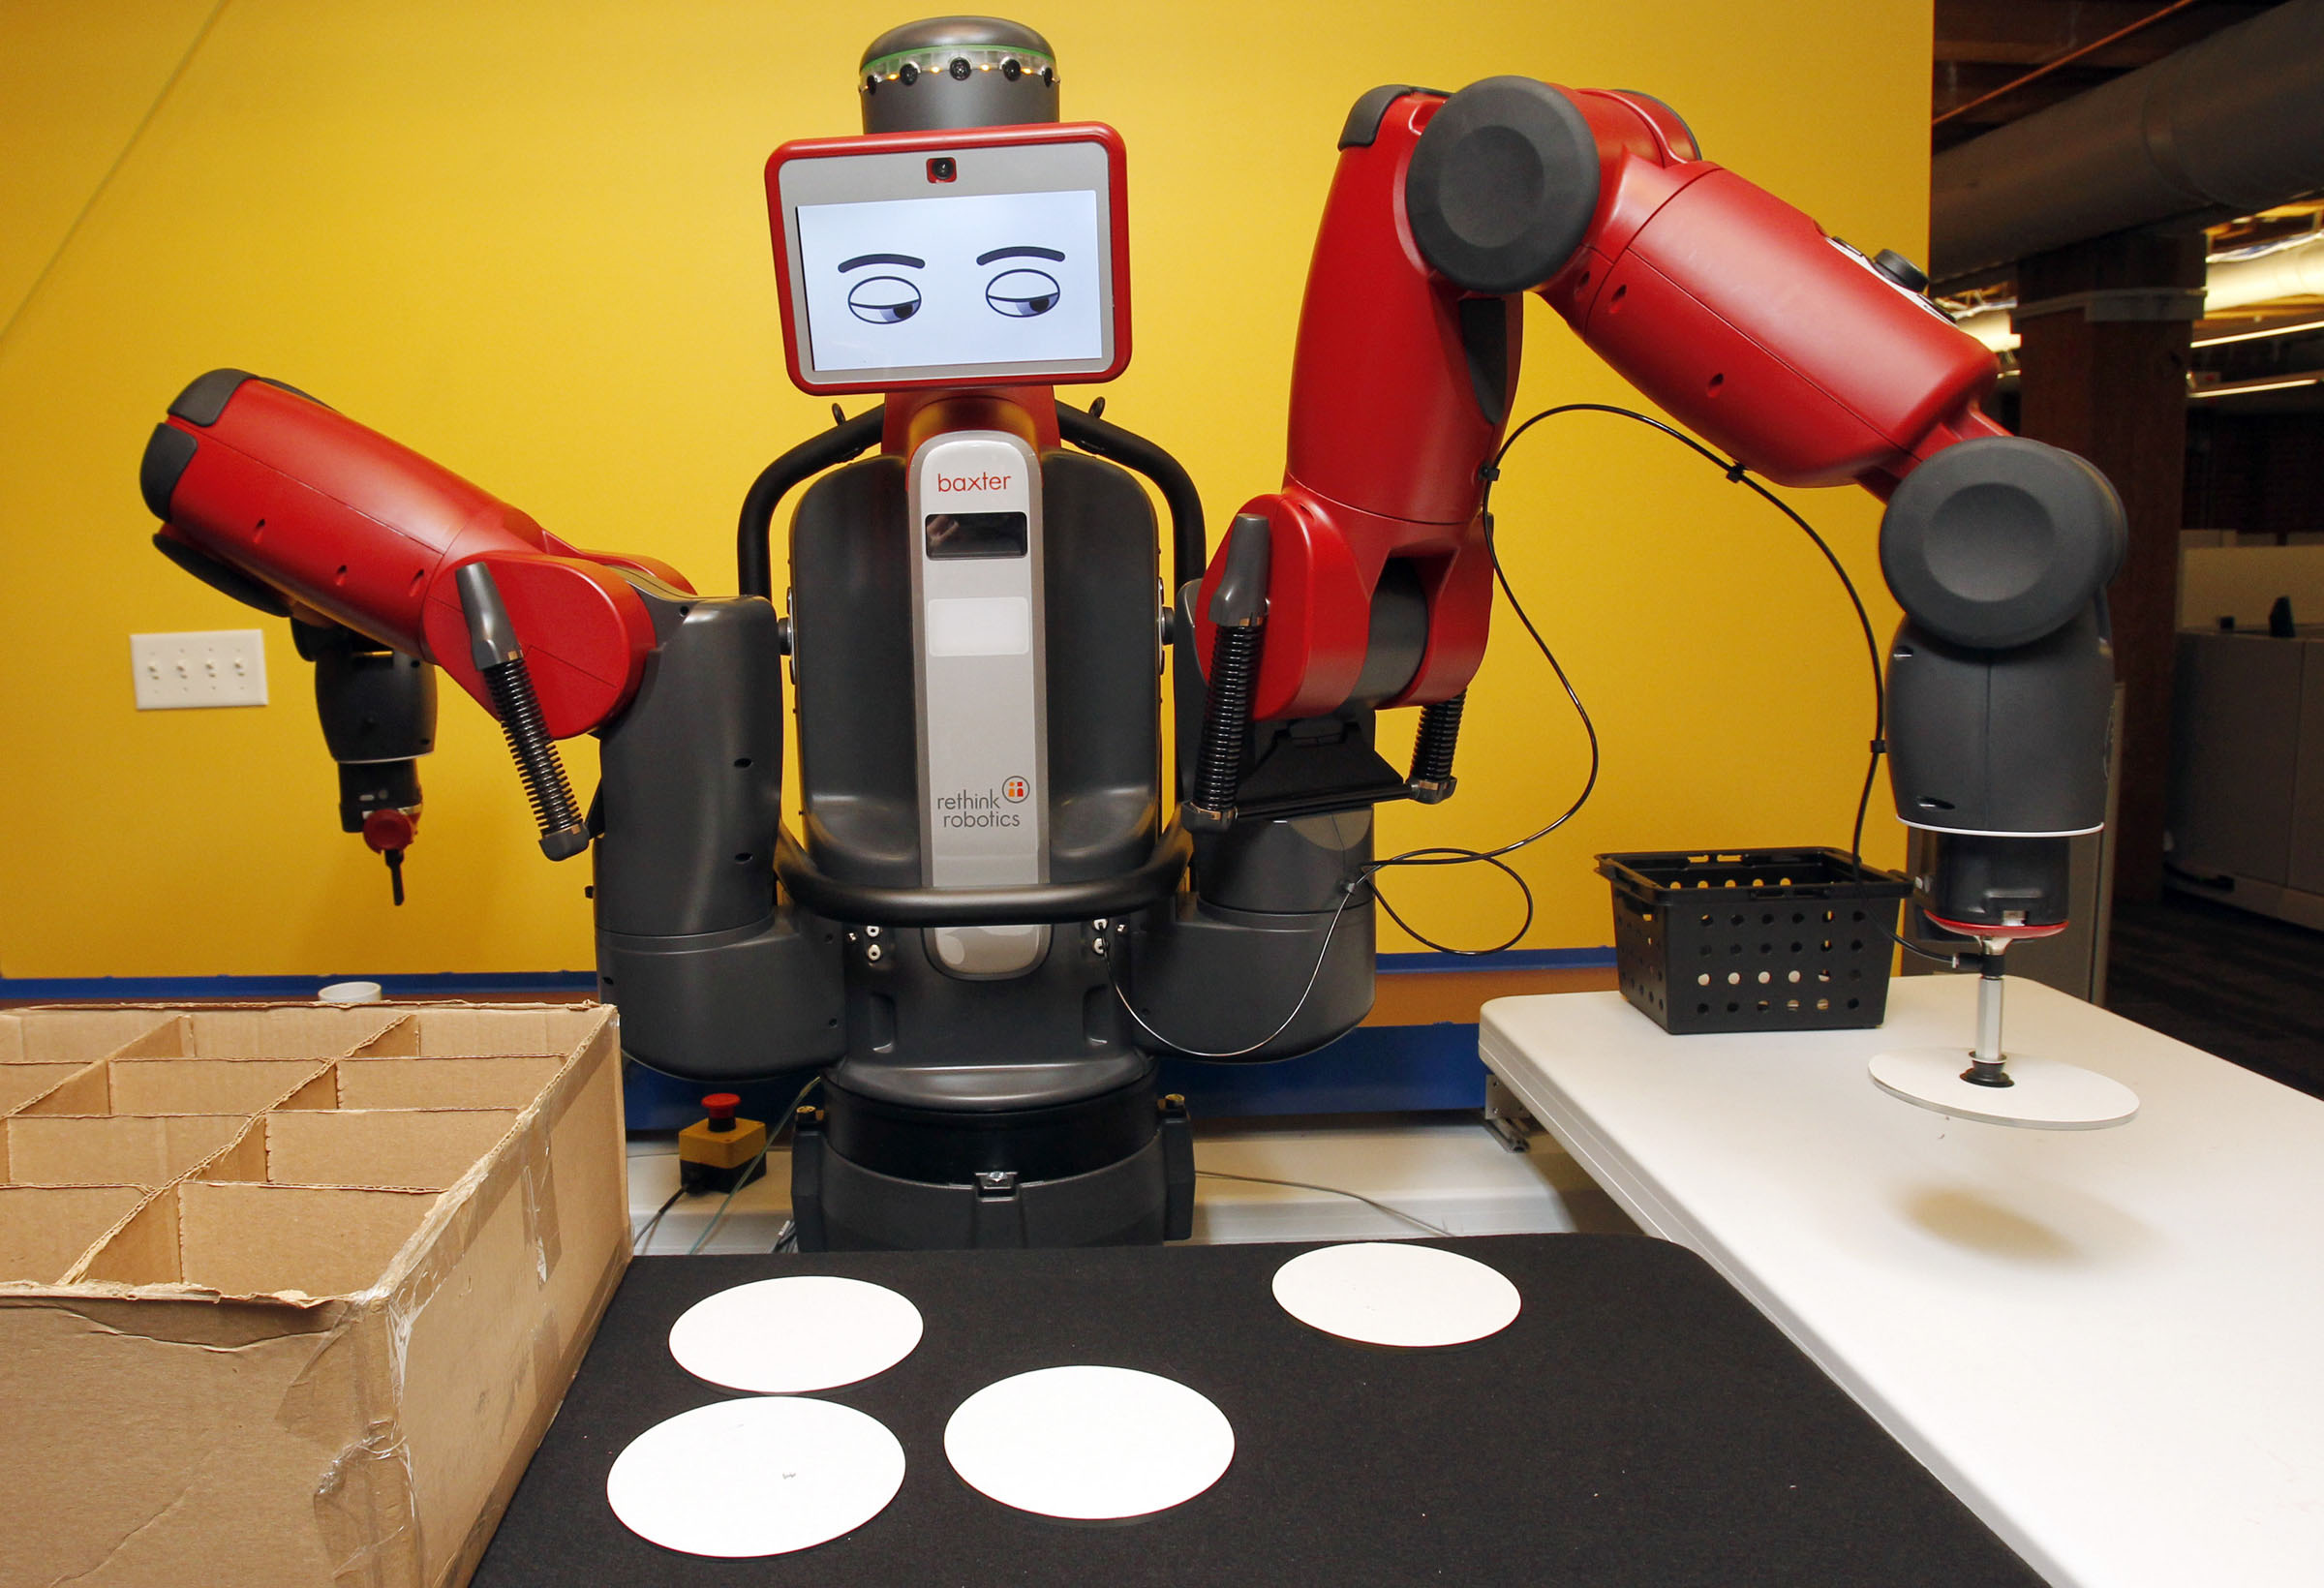 Meet your future boss: The Baxter robot was designed to work alongside real people. Its face changes expressions to warn people what it is doing.   THE WASHINGTON POST